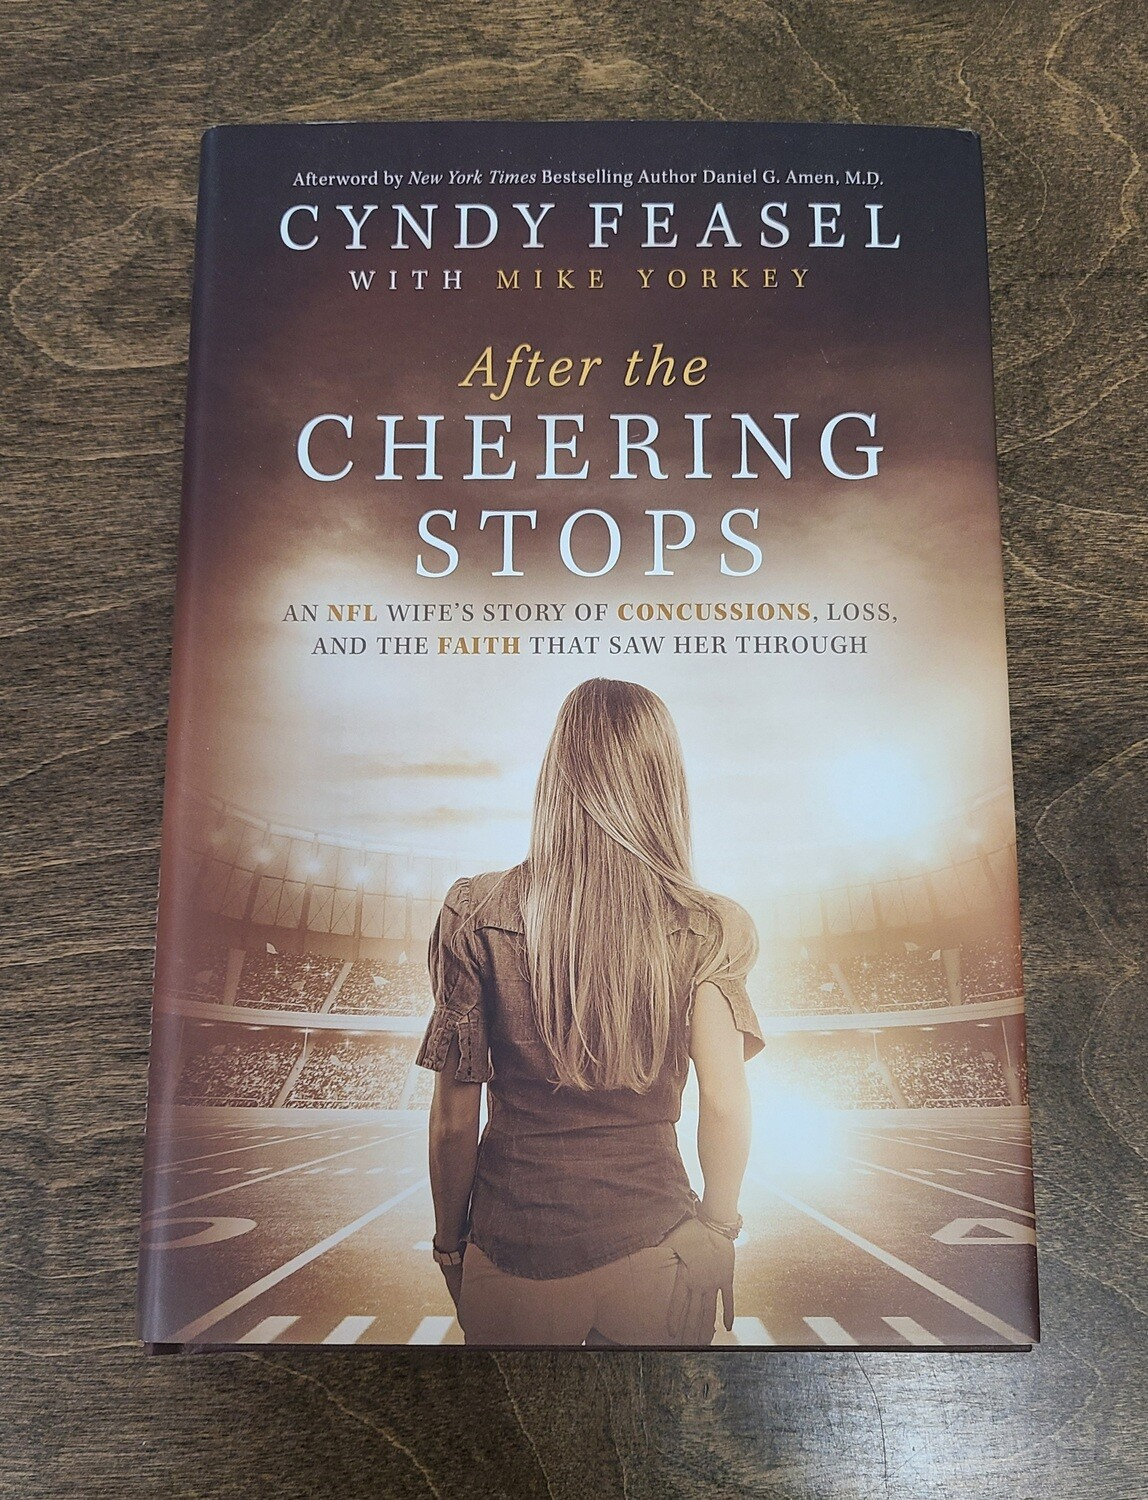 After the Cheering Stops: An NFL Wife's Story of Concussion, Loss, and the Faith that saw Her Through by Cyndy Feasel with Mike Yorkey